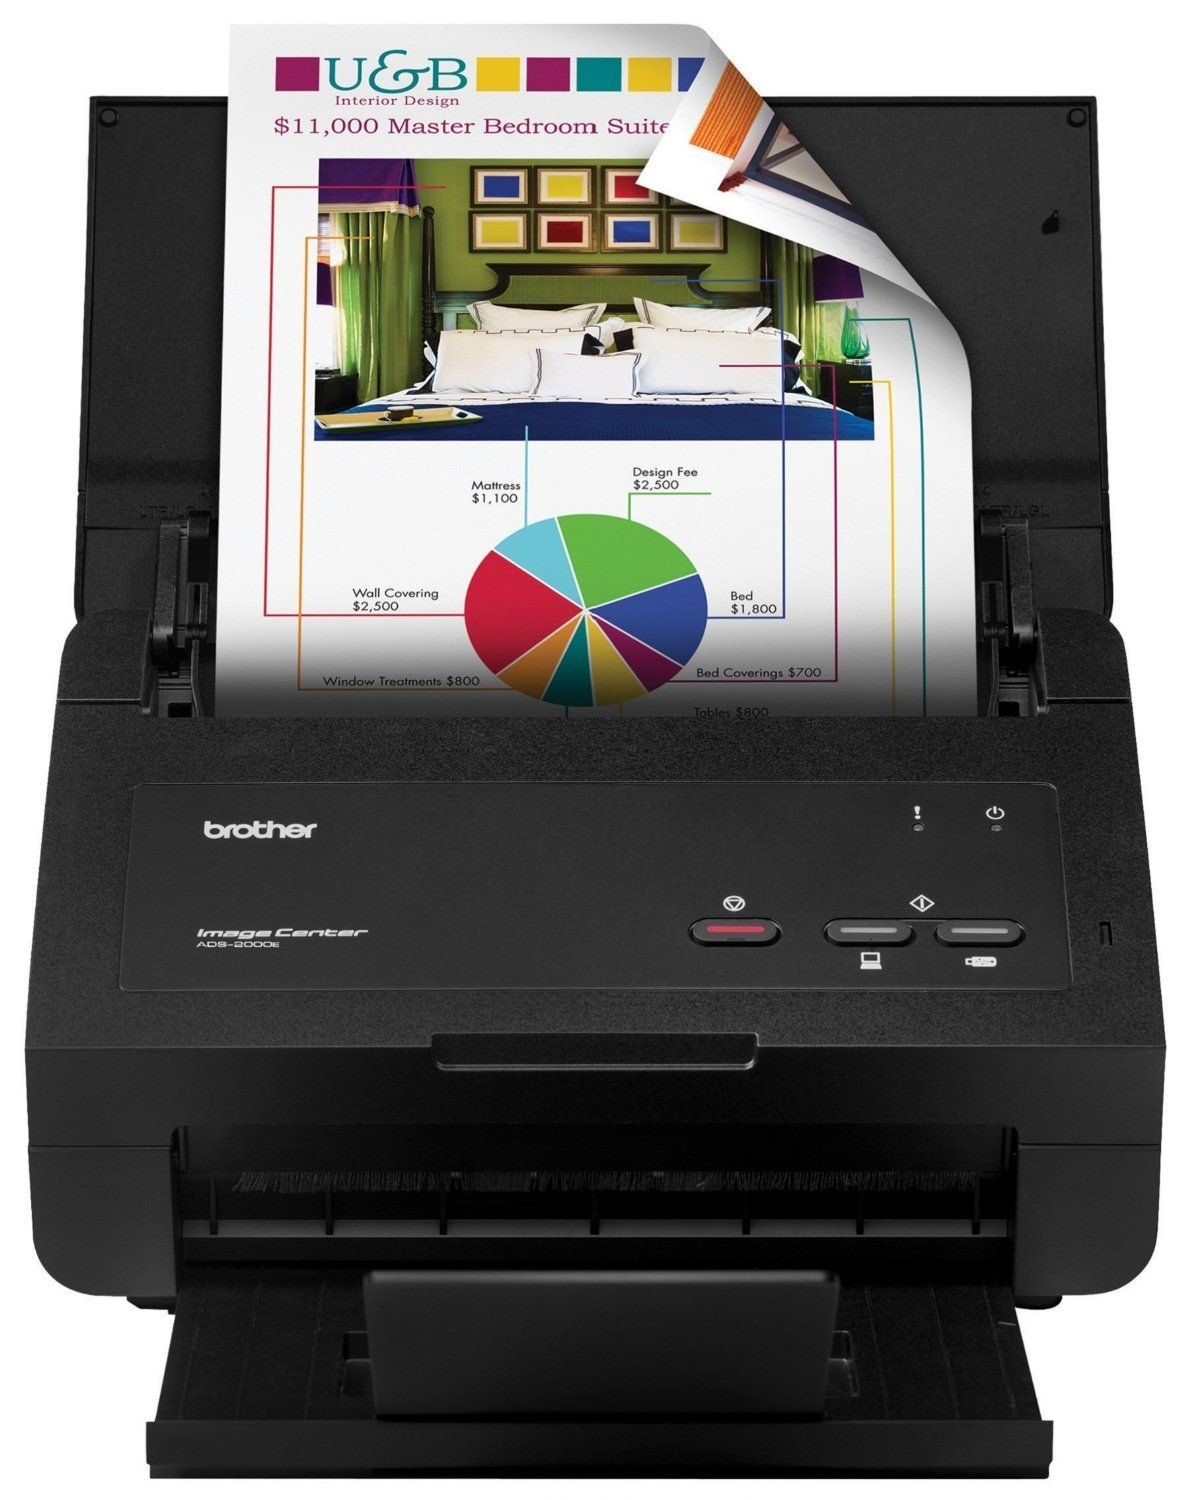 7 Best Document Scanners For Your Home Office In 2021 Scanners Best Computer Scanner